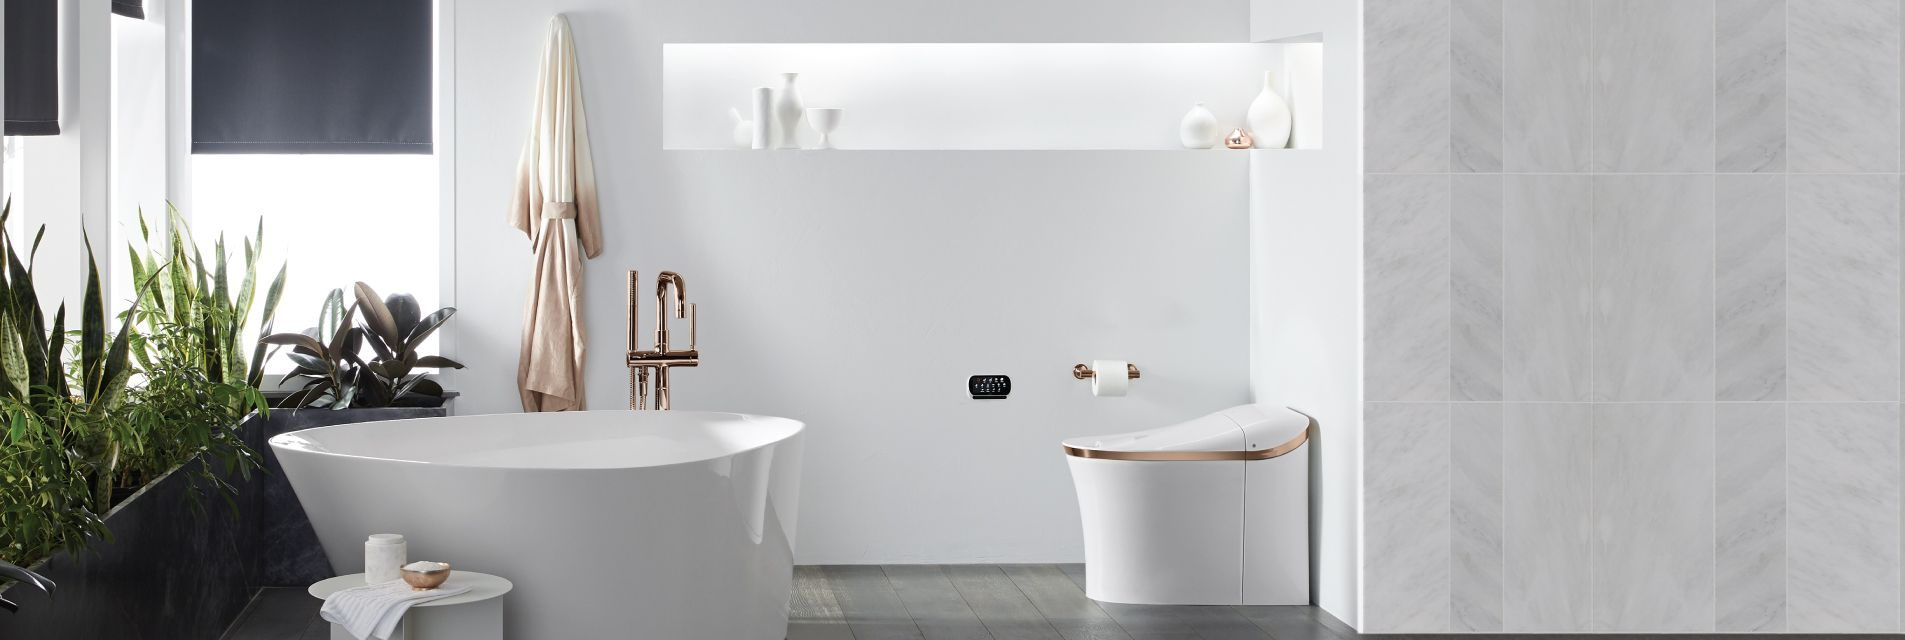 Kohler Malaysia Luxury Bathrooms And Designer Kitchens